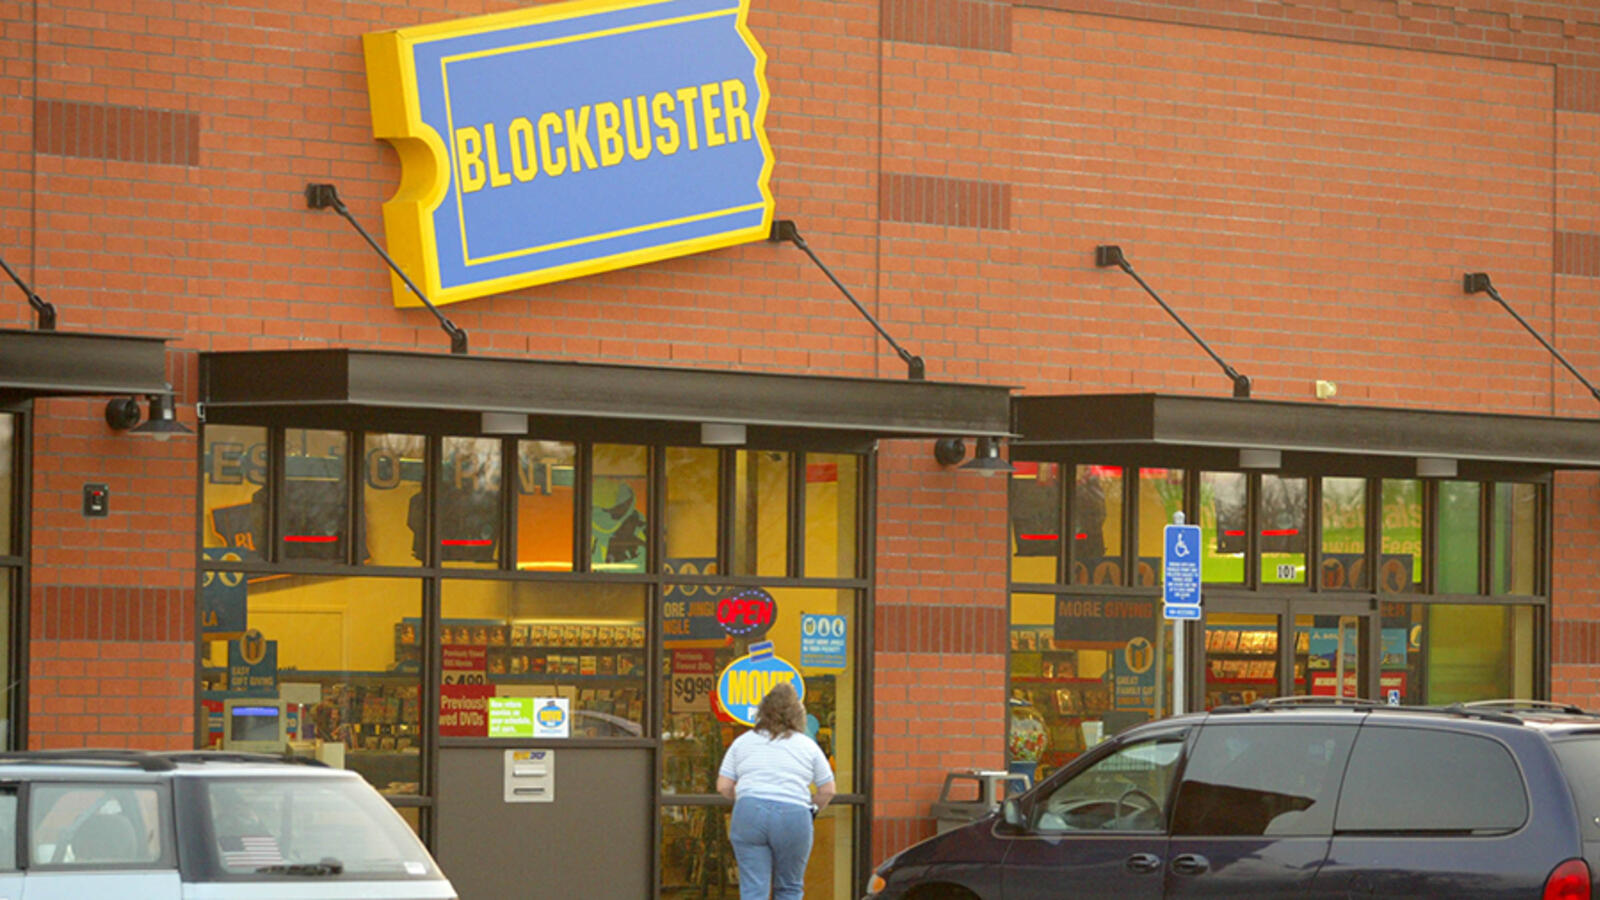 The Last Blockbuster In The World Is Turning Into An Airbnb